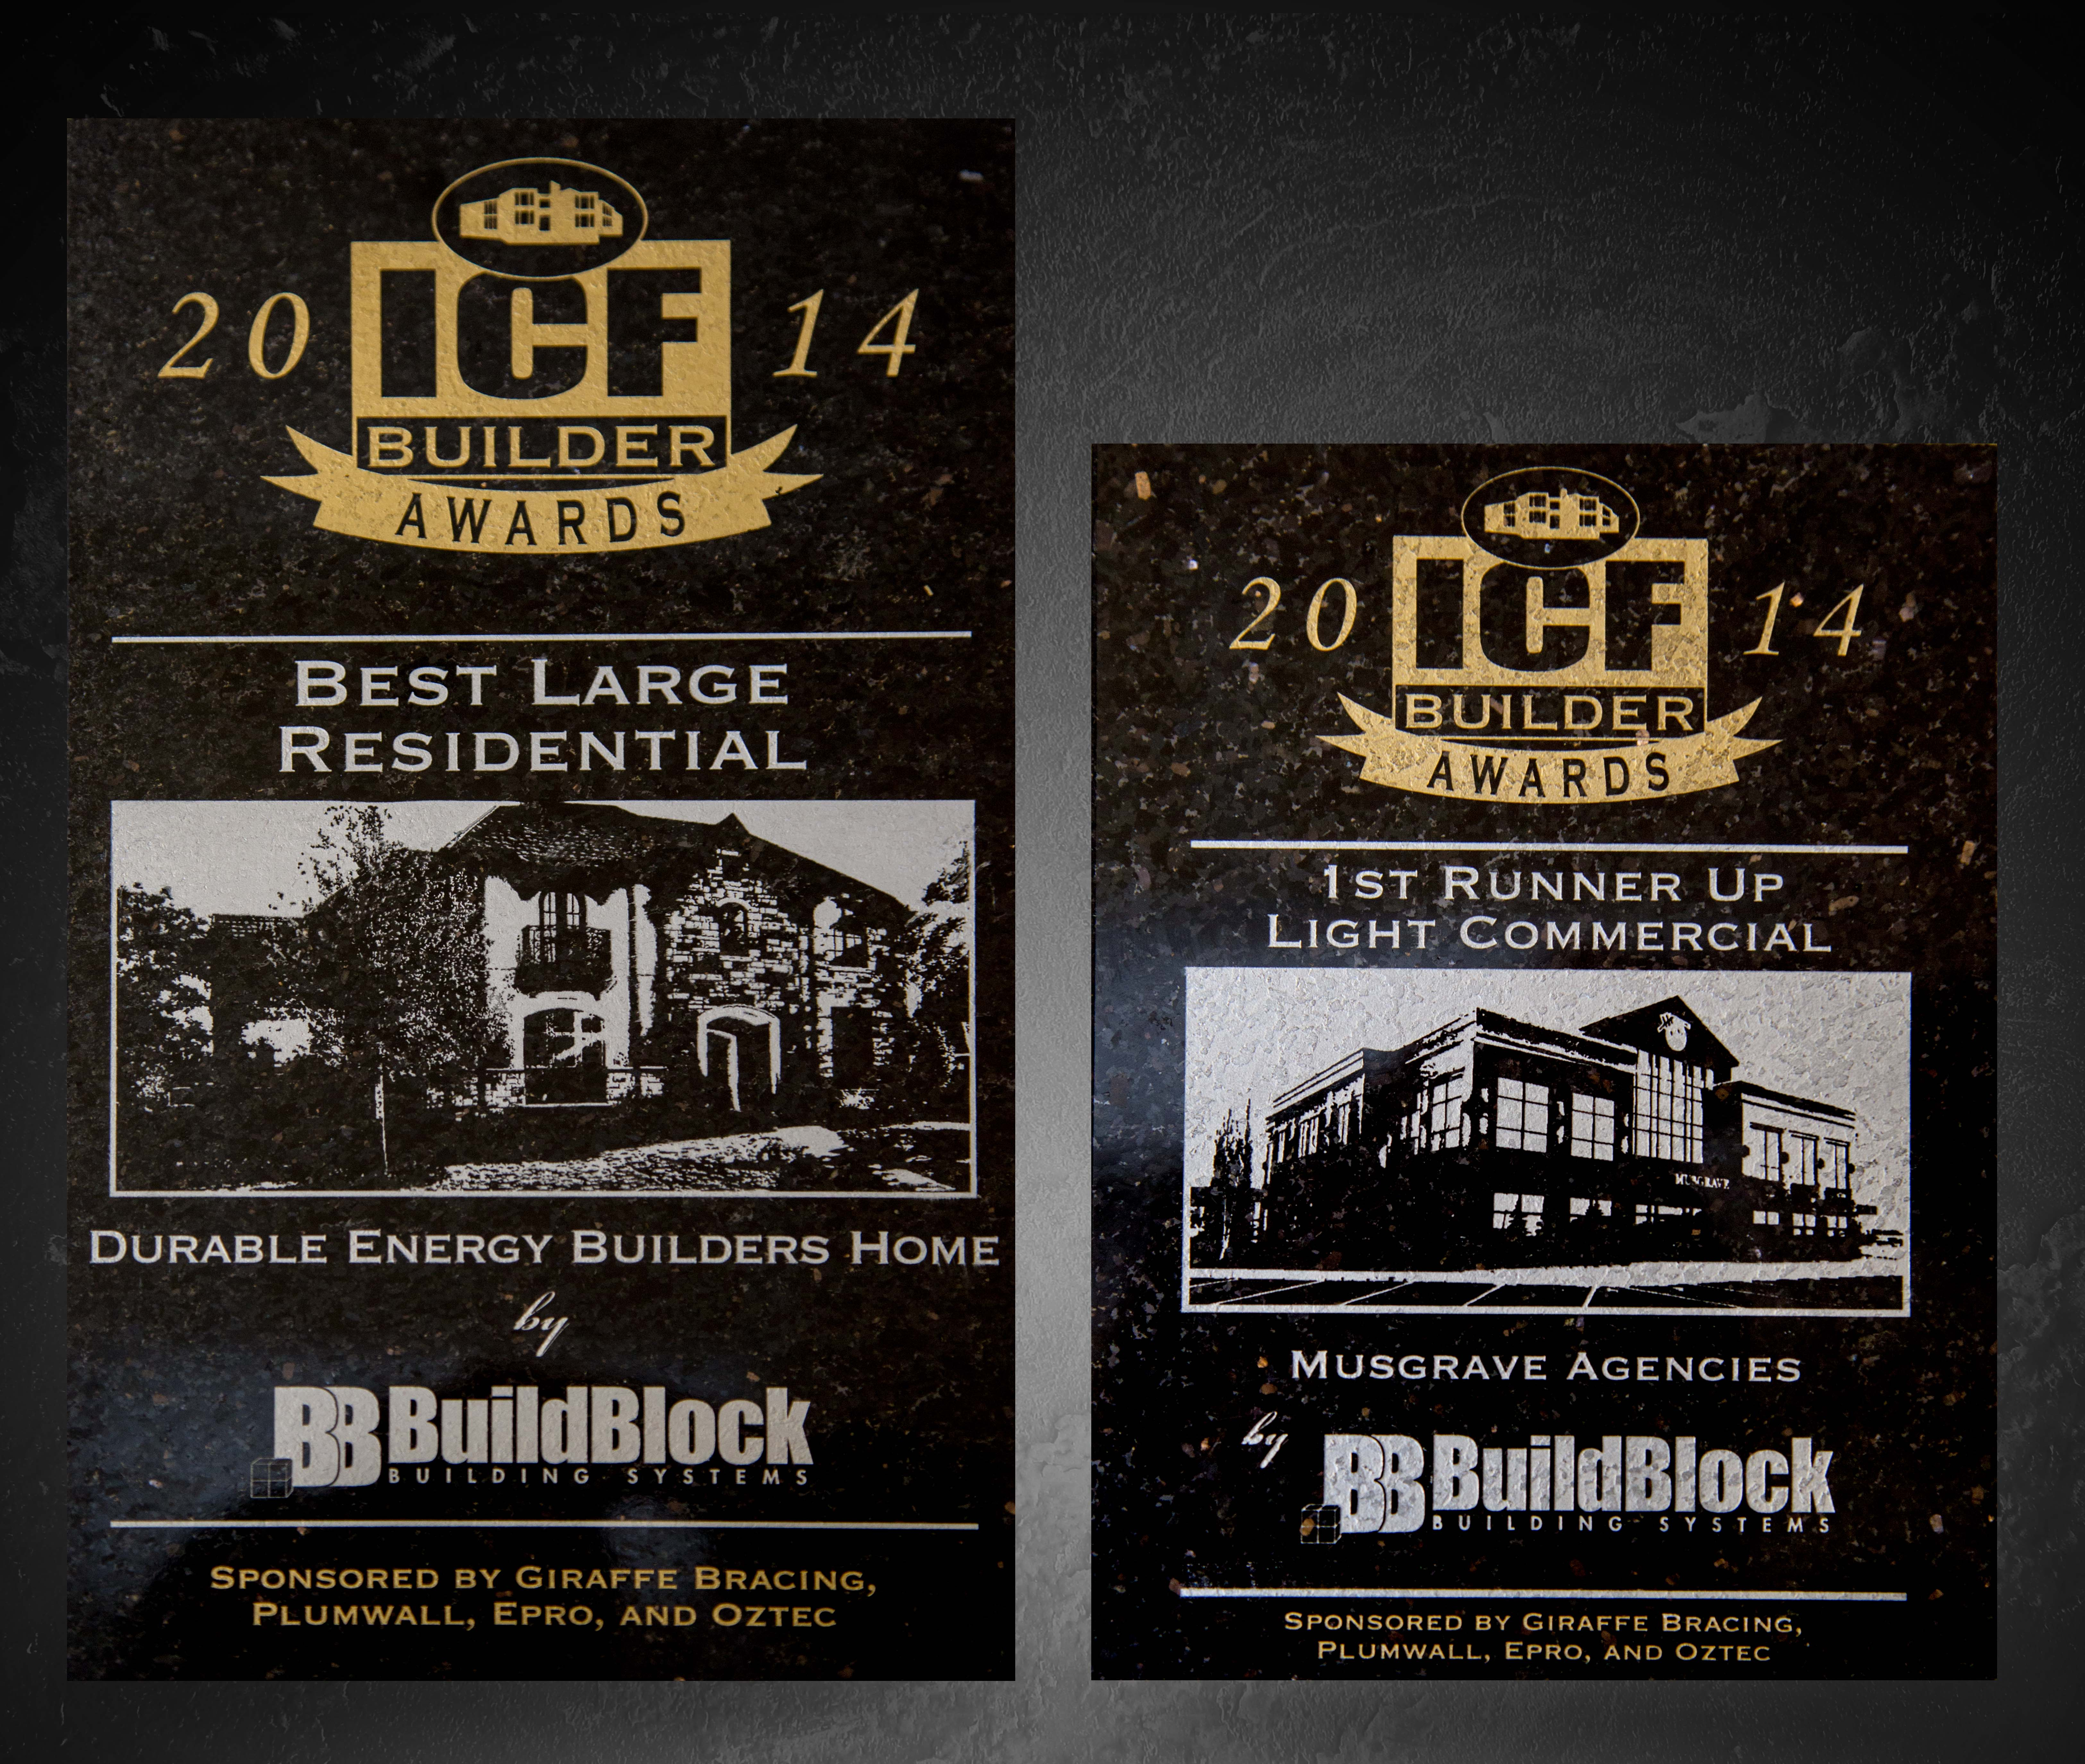 Press Release: BuildBlock Building Systems Projects Win Two National Awards